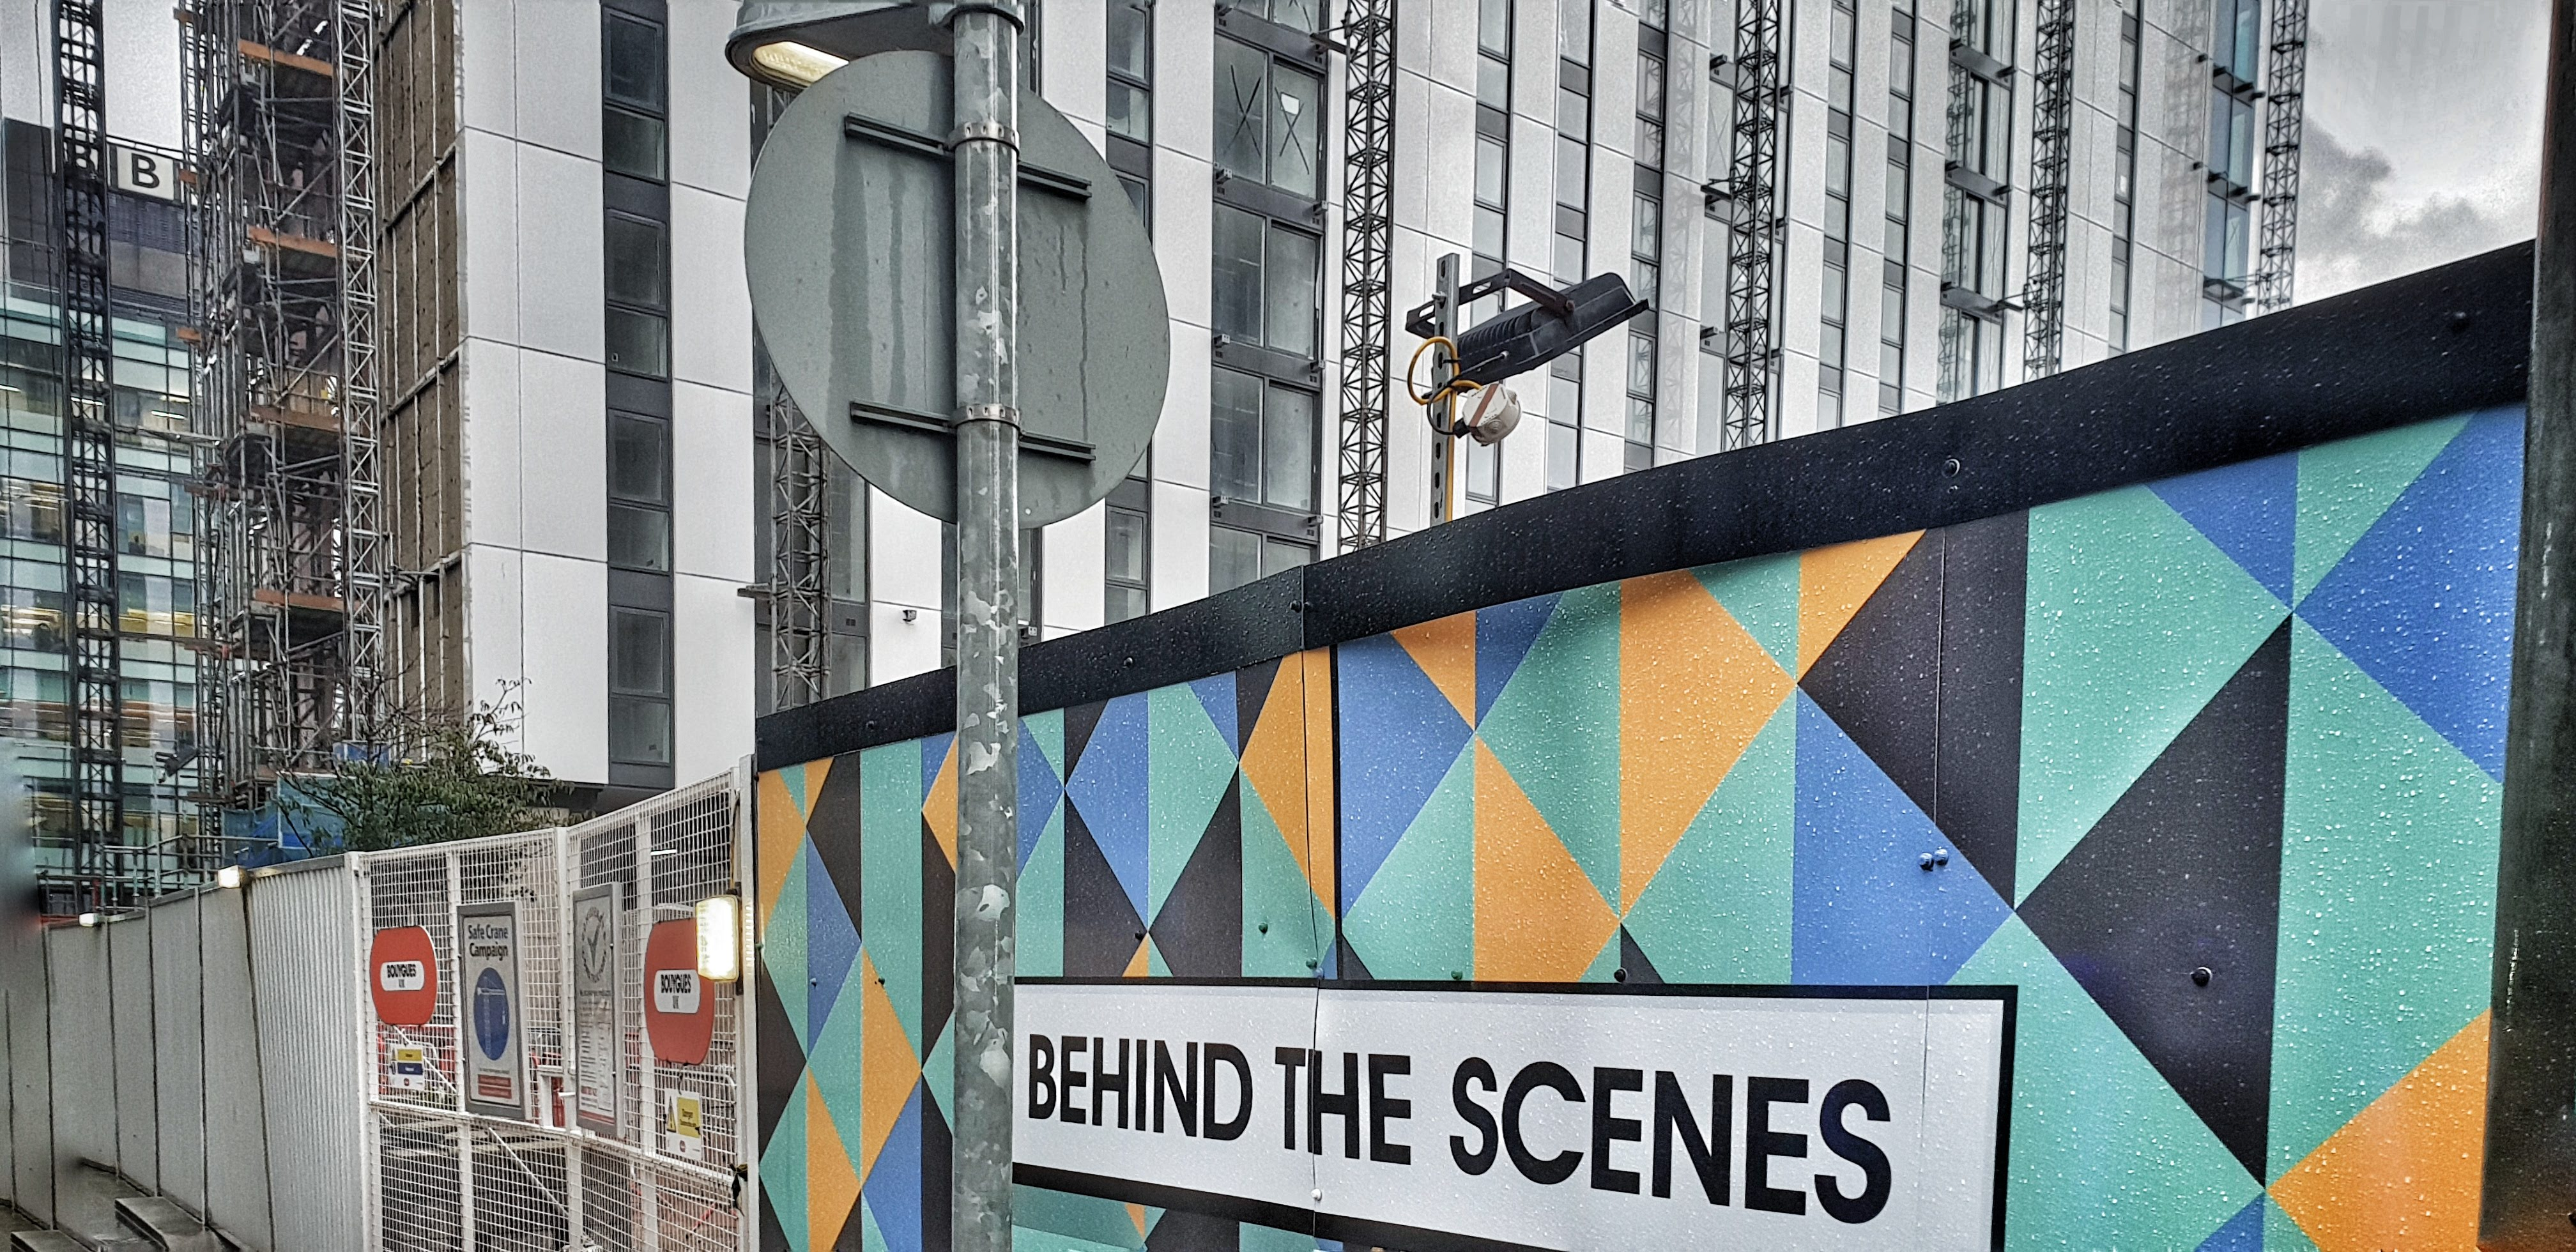 Behind The Scenes at MediaCityUK